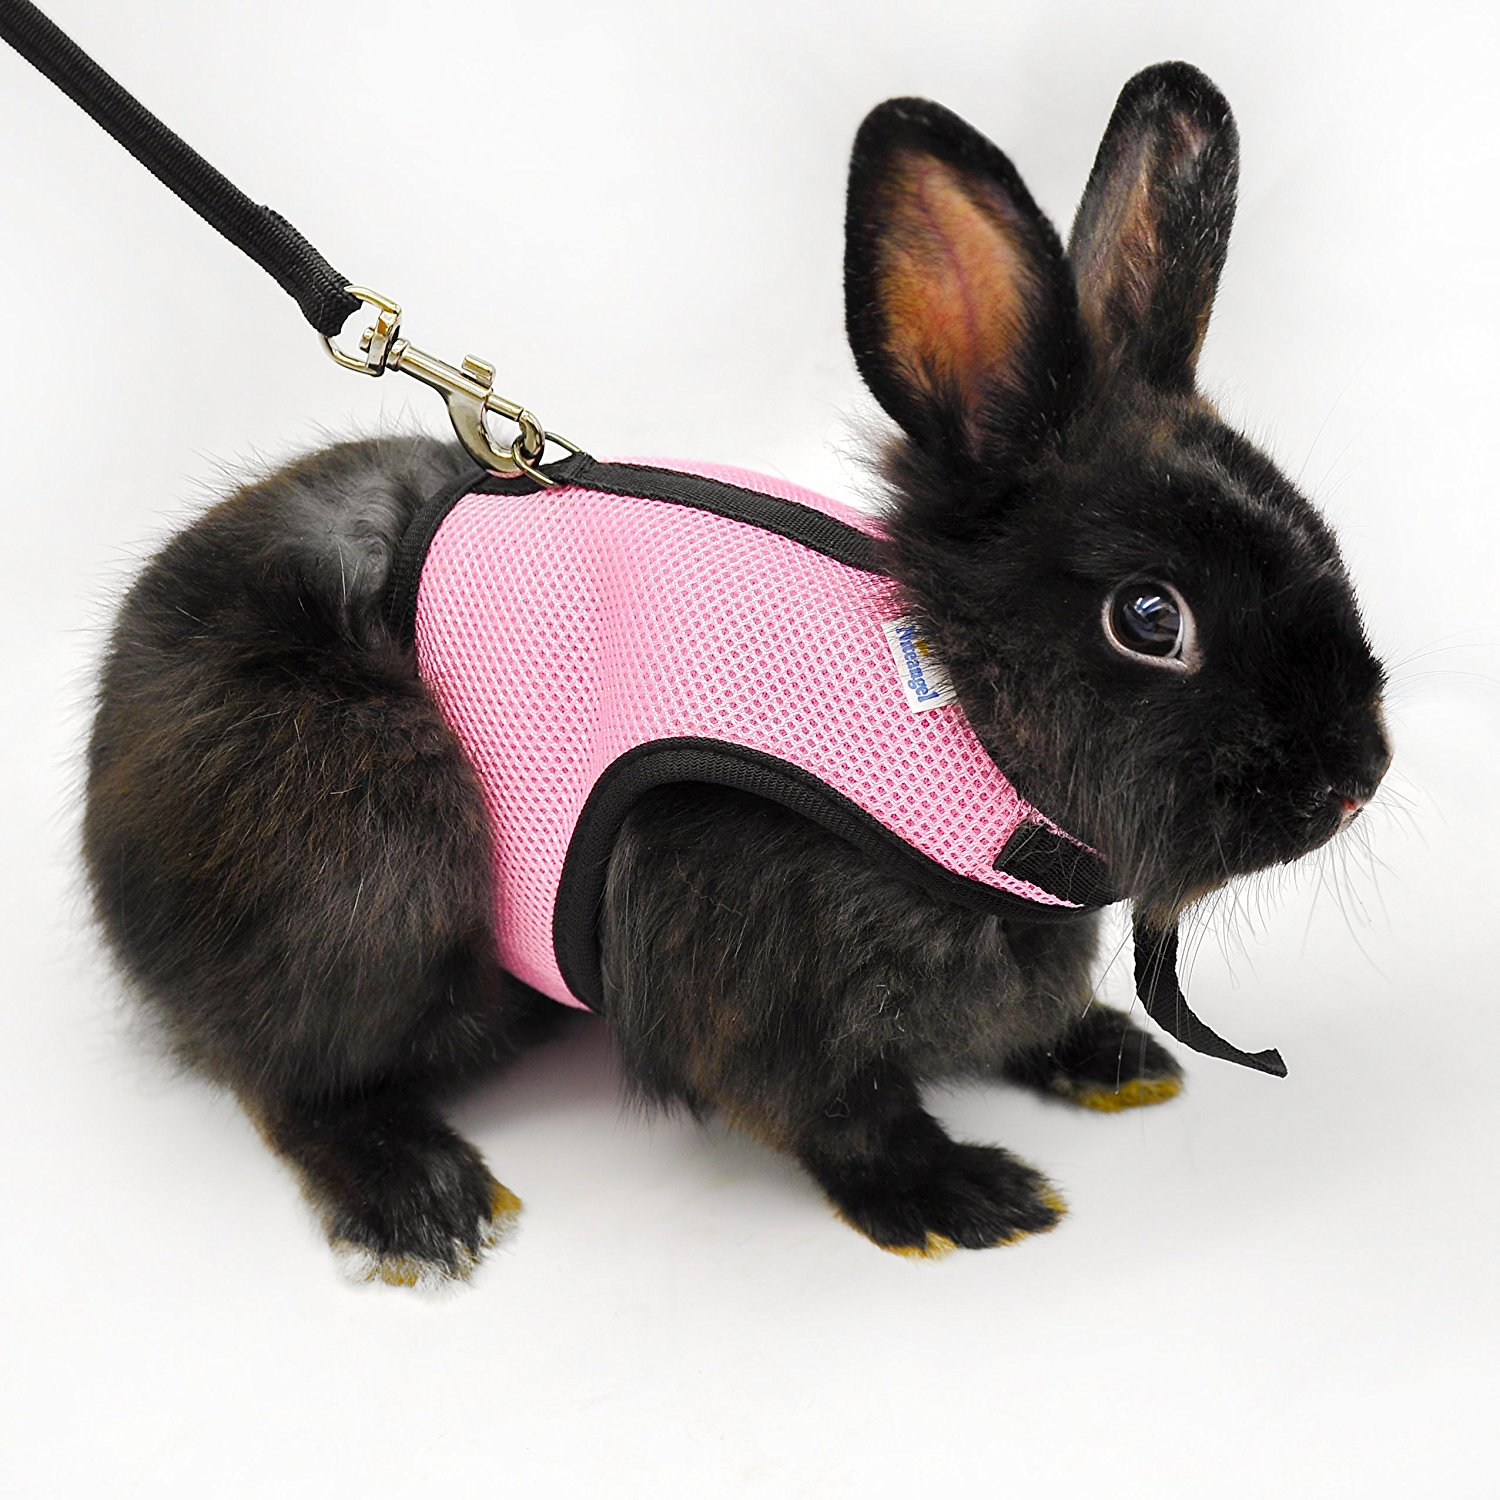 hight resolution of bunny on a leash can you walk a rabbit by squeaks and pig harness dwarf rabbit harnesses